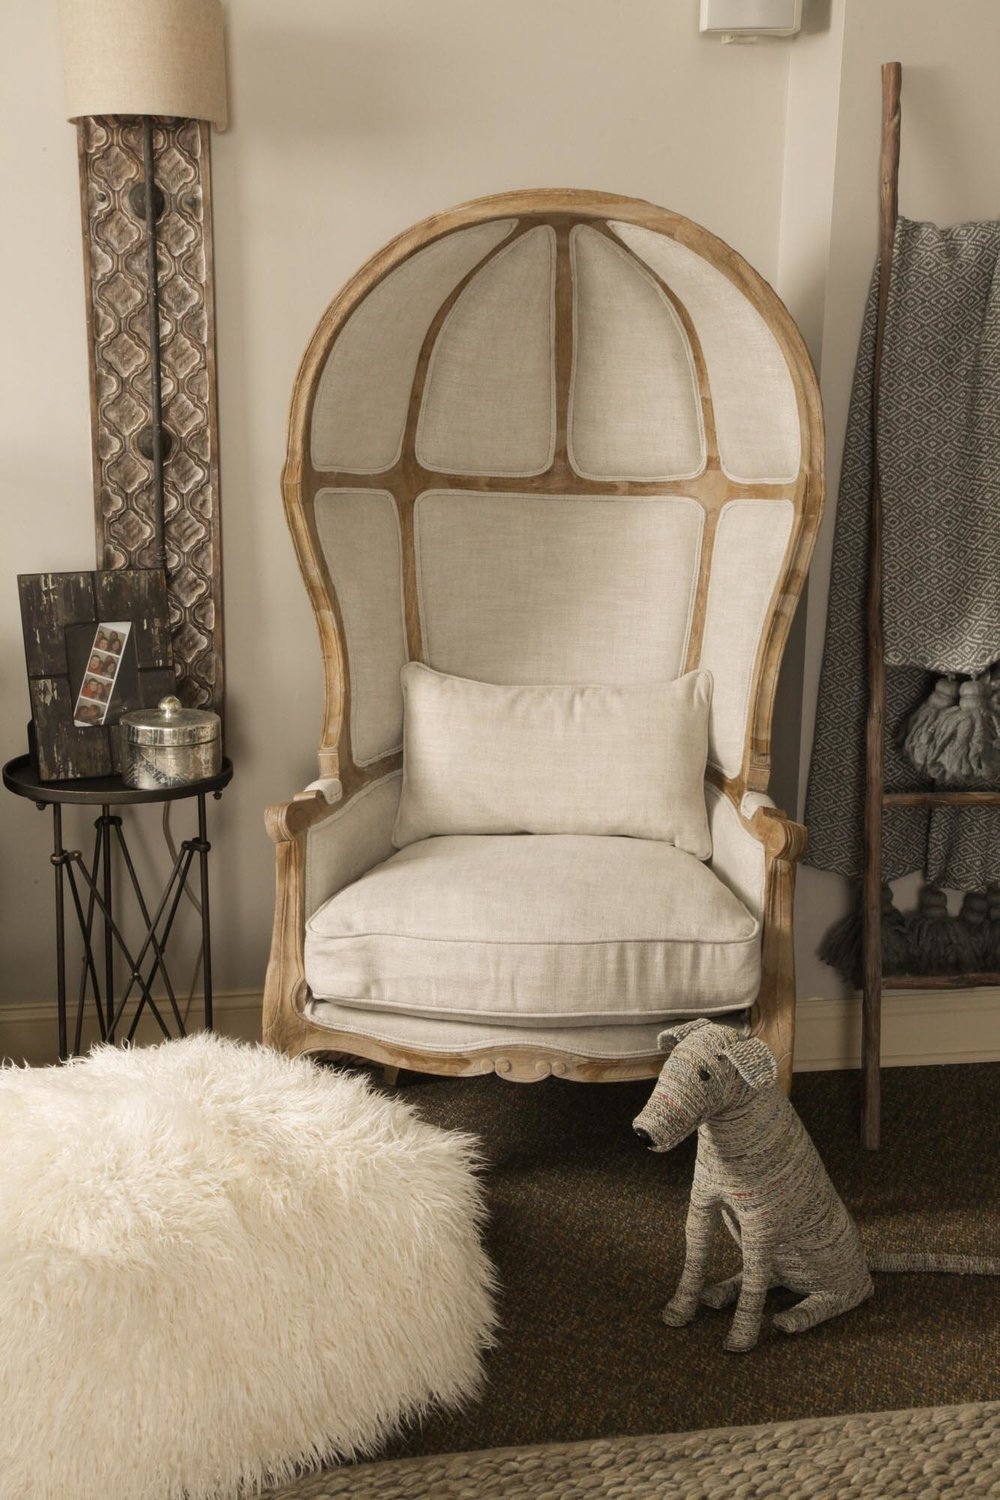 High backed beige colored chair